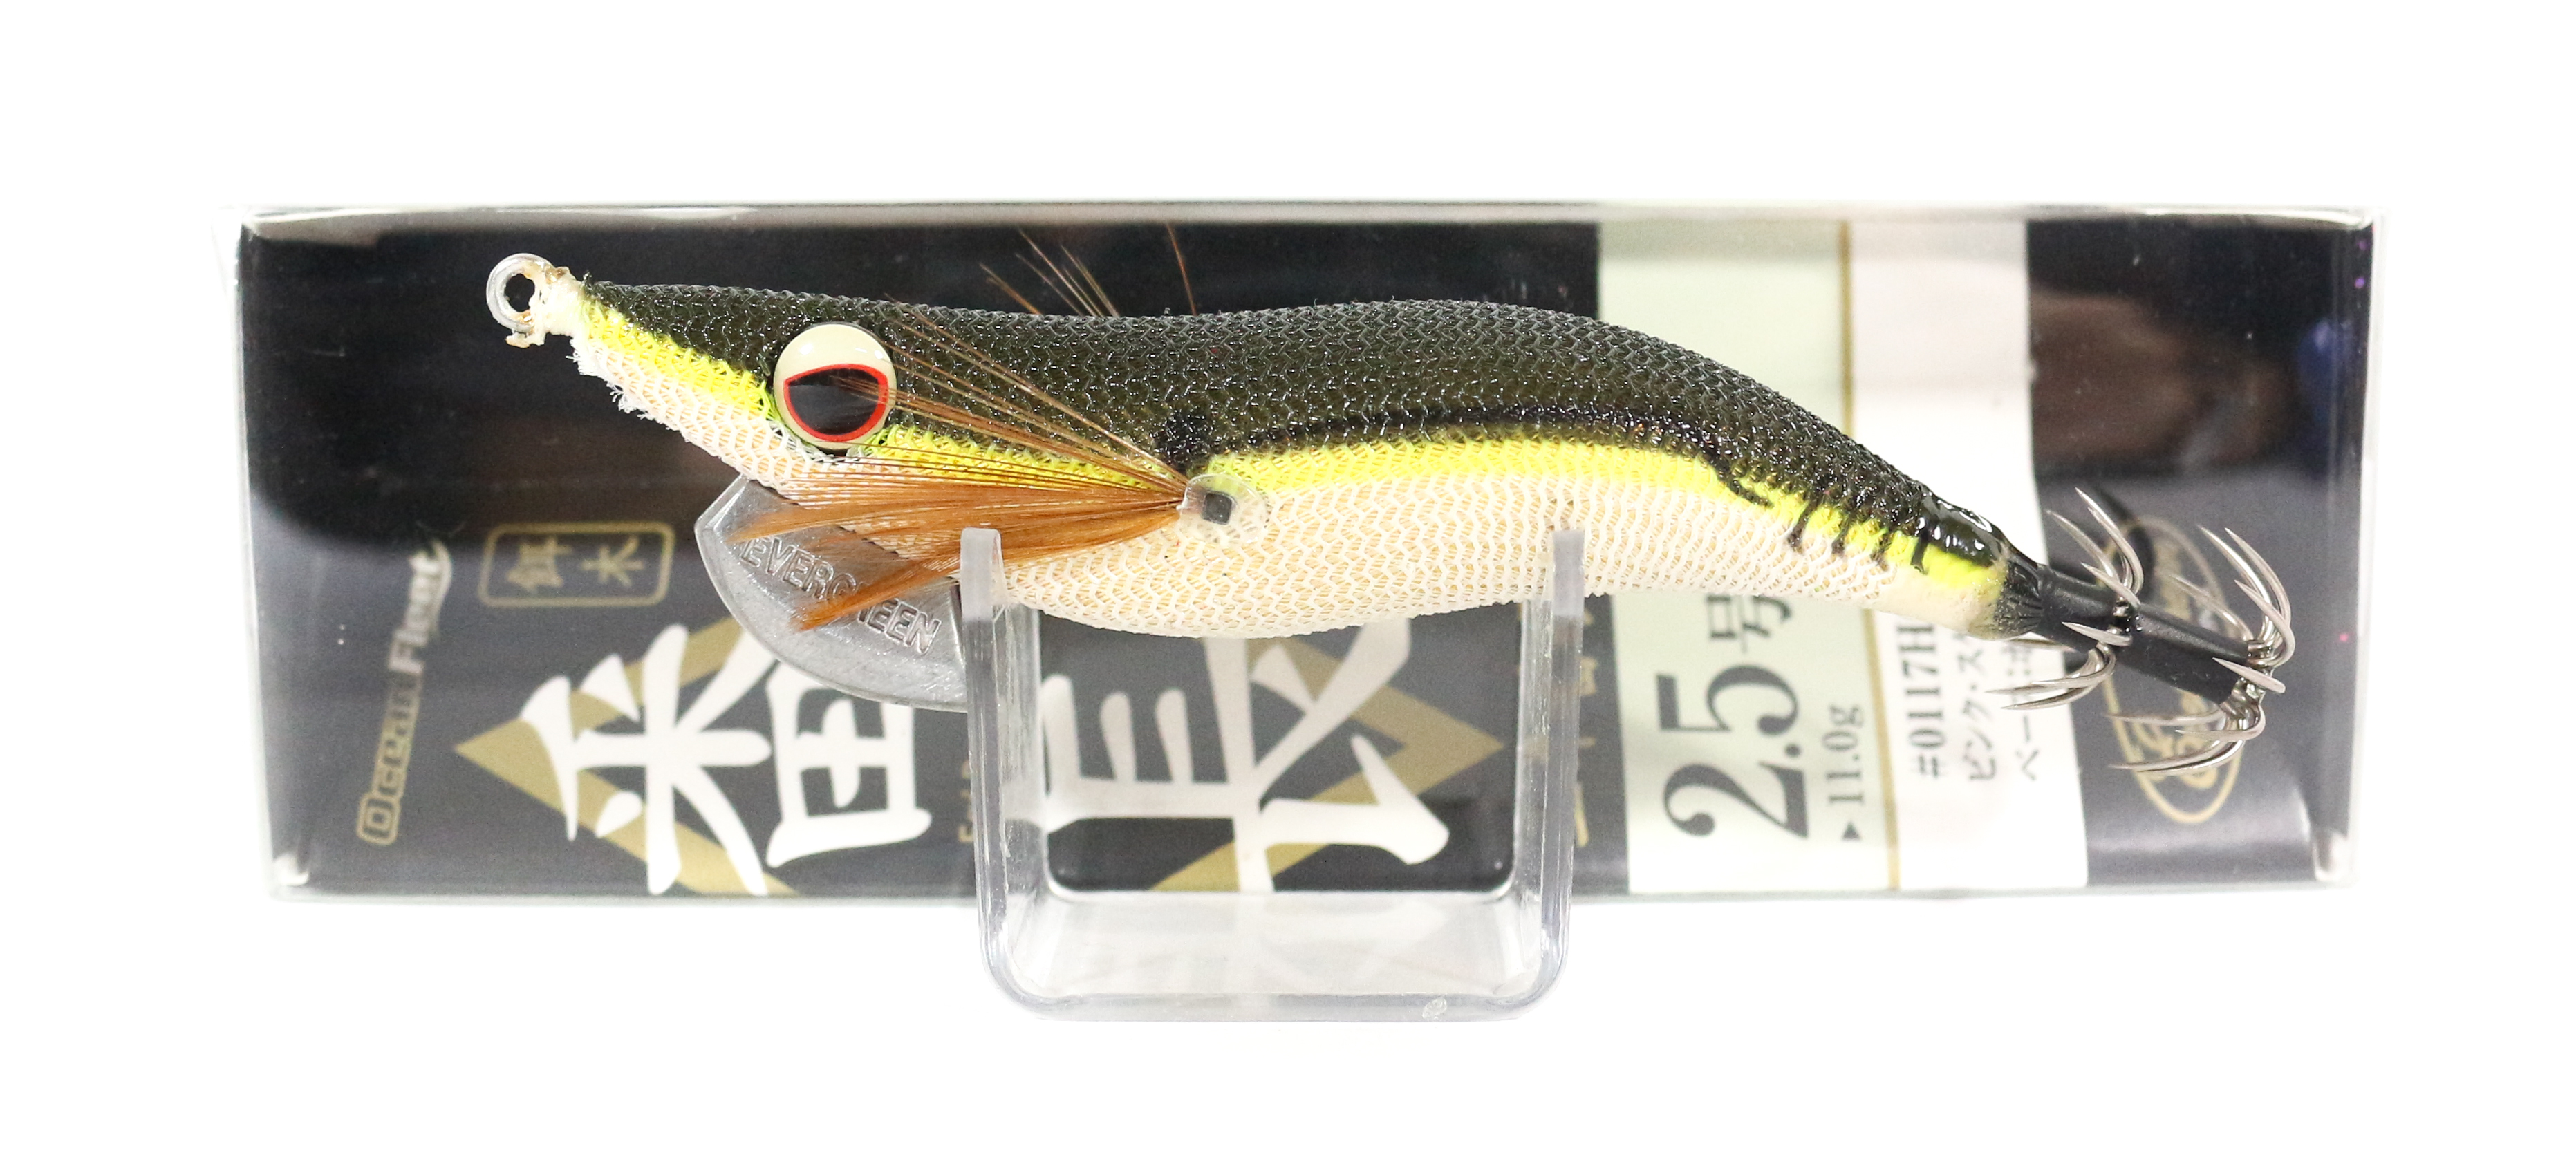 Evergreen Ocean Fleet Custom Squid Jig Lure 2.5 0401G (9377)